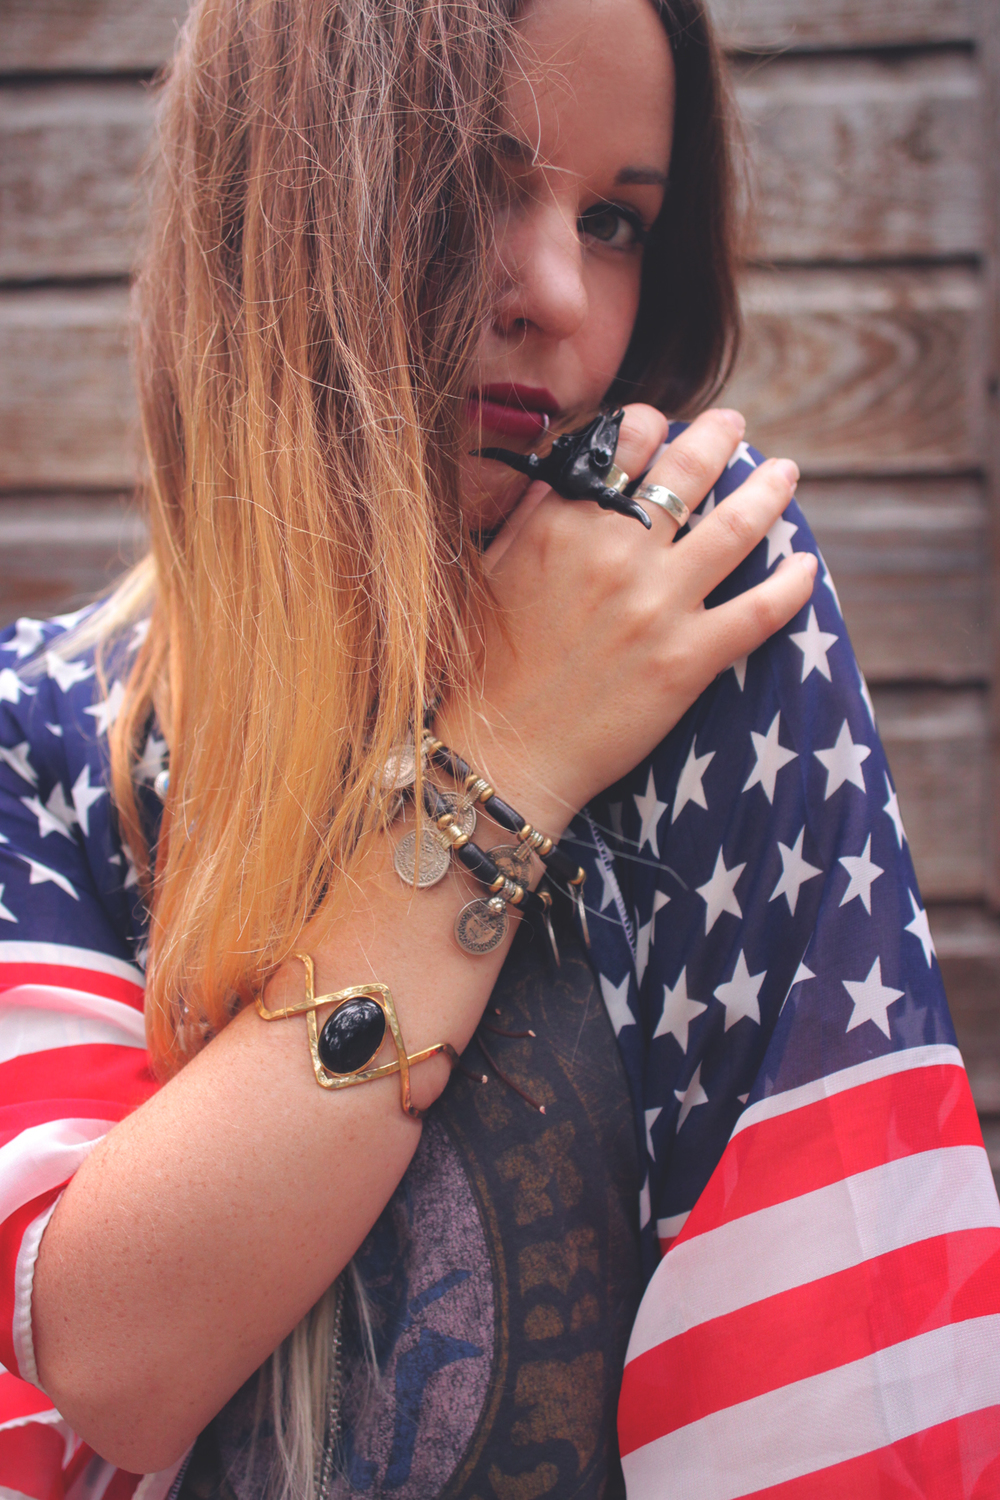 Americana Lookbook via bohocollective.com